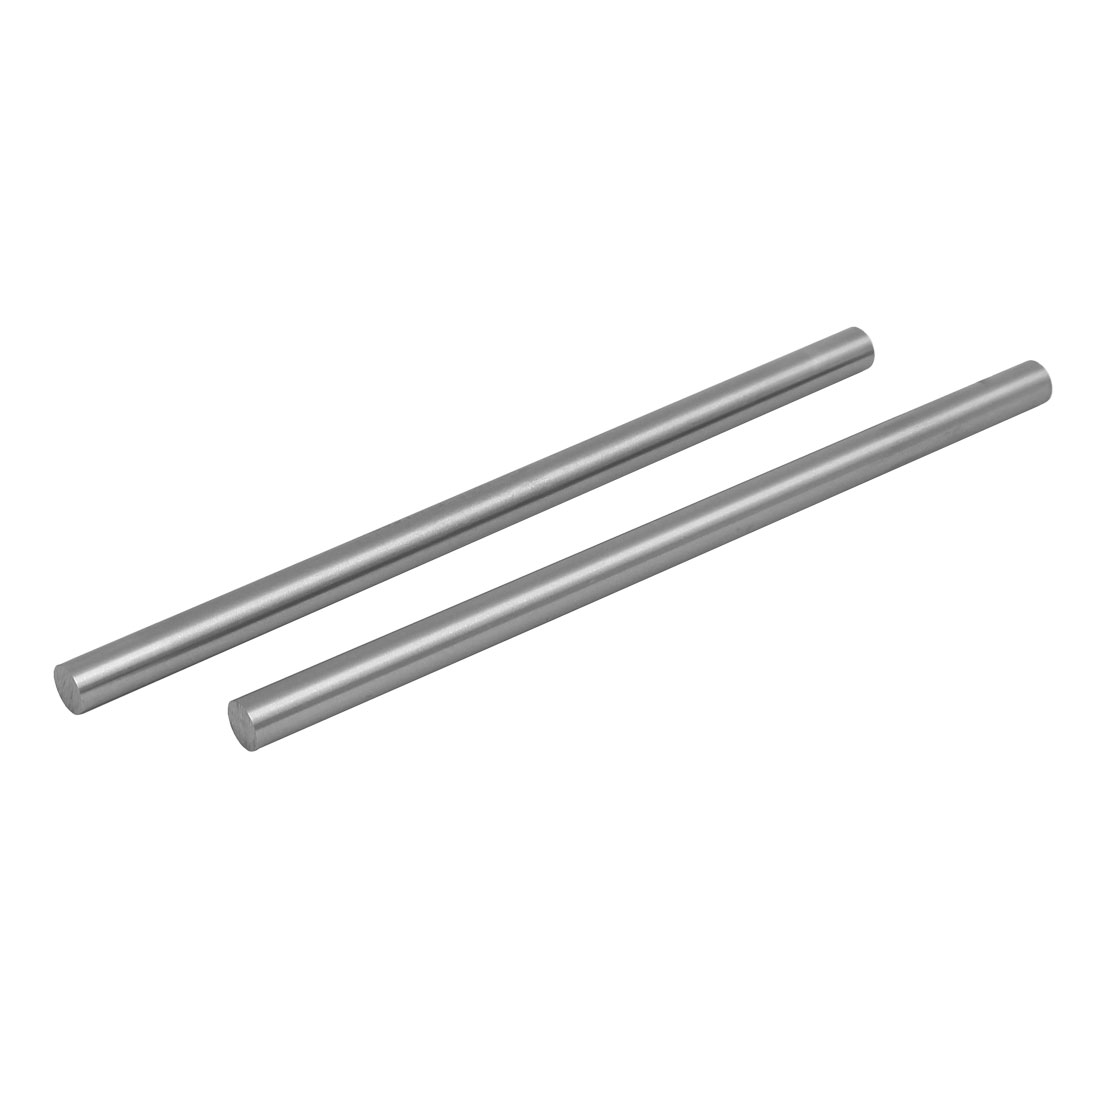 10mm Dia 200mm Length HSS Round Shaft Rod Bar Lathe Tools Gray 2pcs